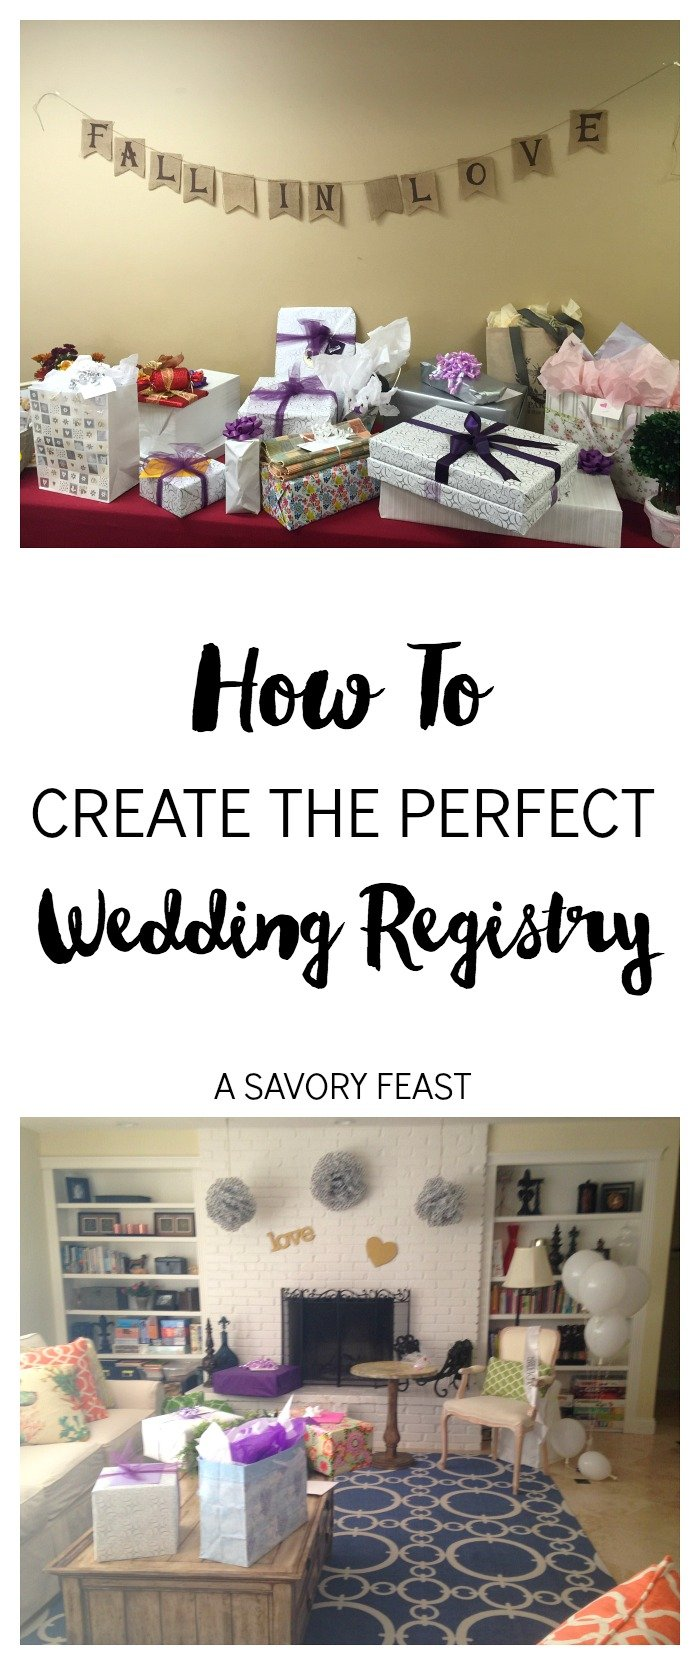 How to Create the Perfect Wedding Registry